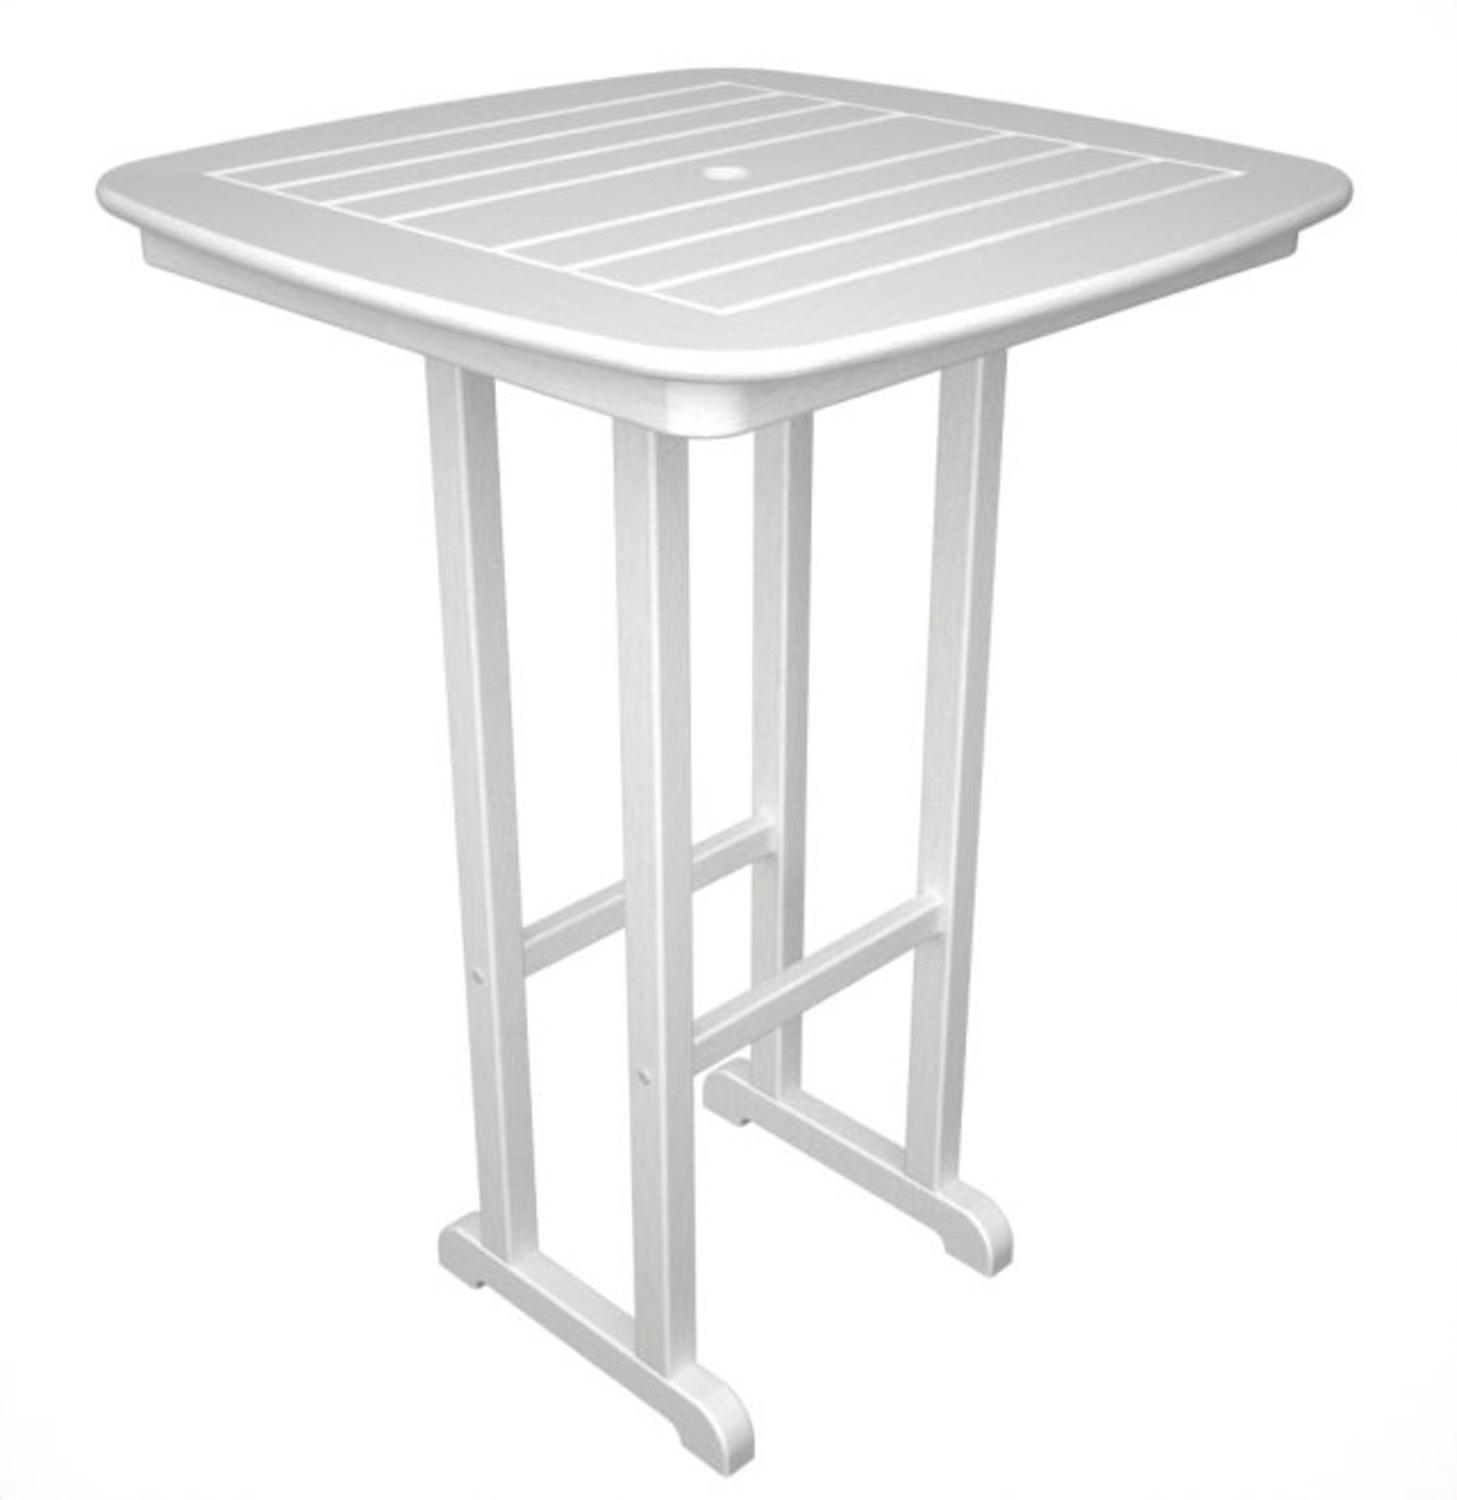 """31"""" Recycled Earth-Friendly Cape Cod Outdoor Patio Pub Table White by Eco-Friendly Furnishings"""